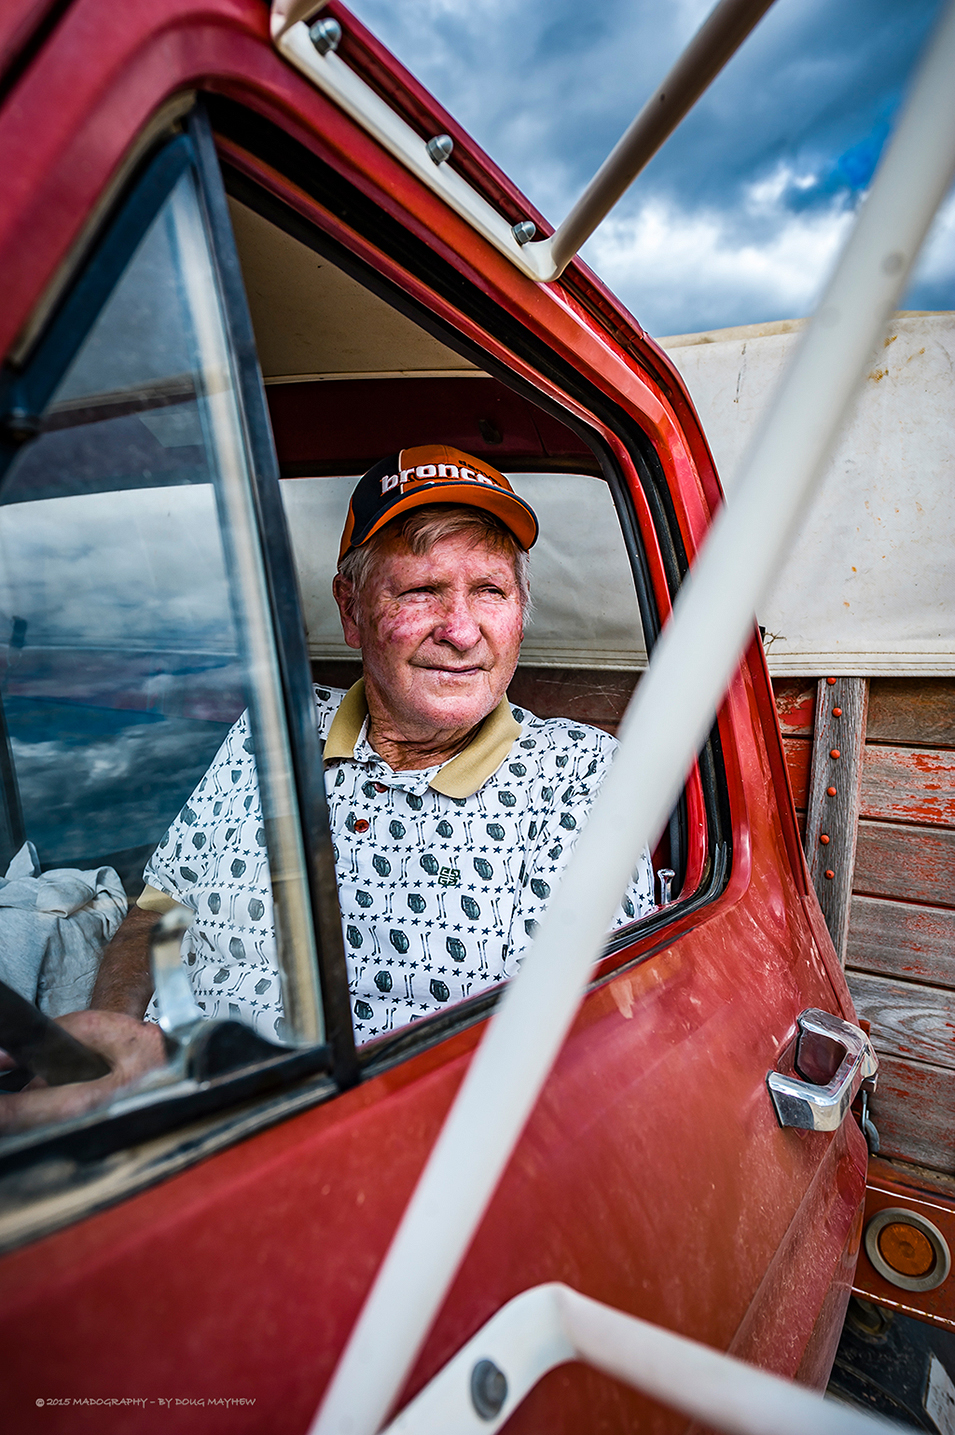 Forgotten Heartland Red-Blooded American True - STUDIO MADOGRAPHY by Doug Mayhew | Madographer